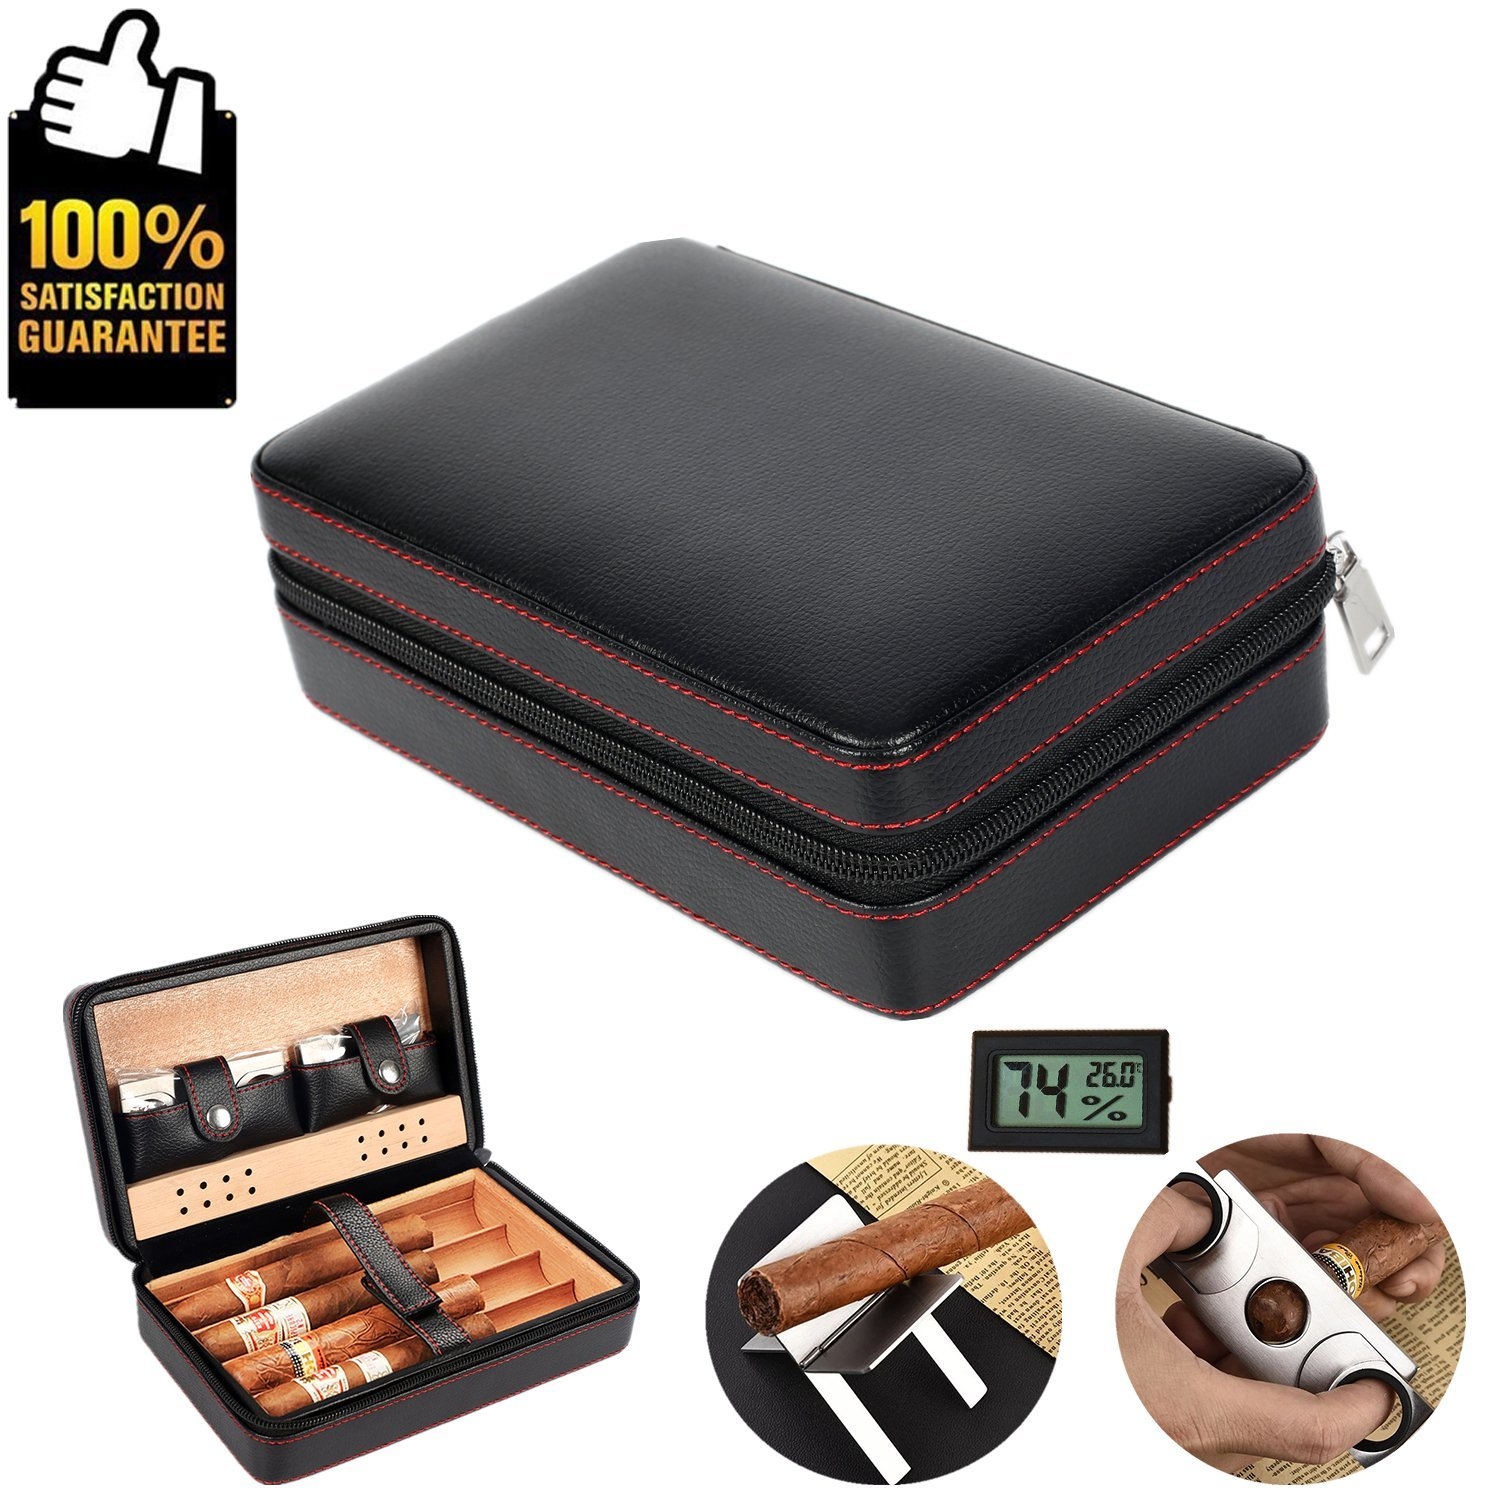 COMMODA Portable Genuine Leather Cedar Cigar Travel Case Cedar Humidor with Digital Hygrometer Cutter Stand Set Wooden Box for 4 Cigars